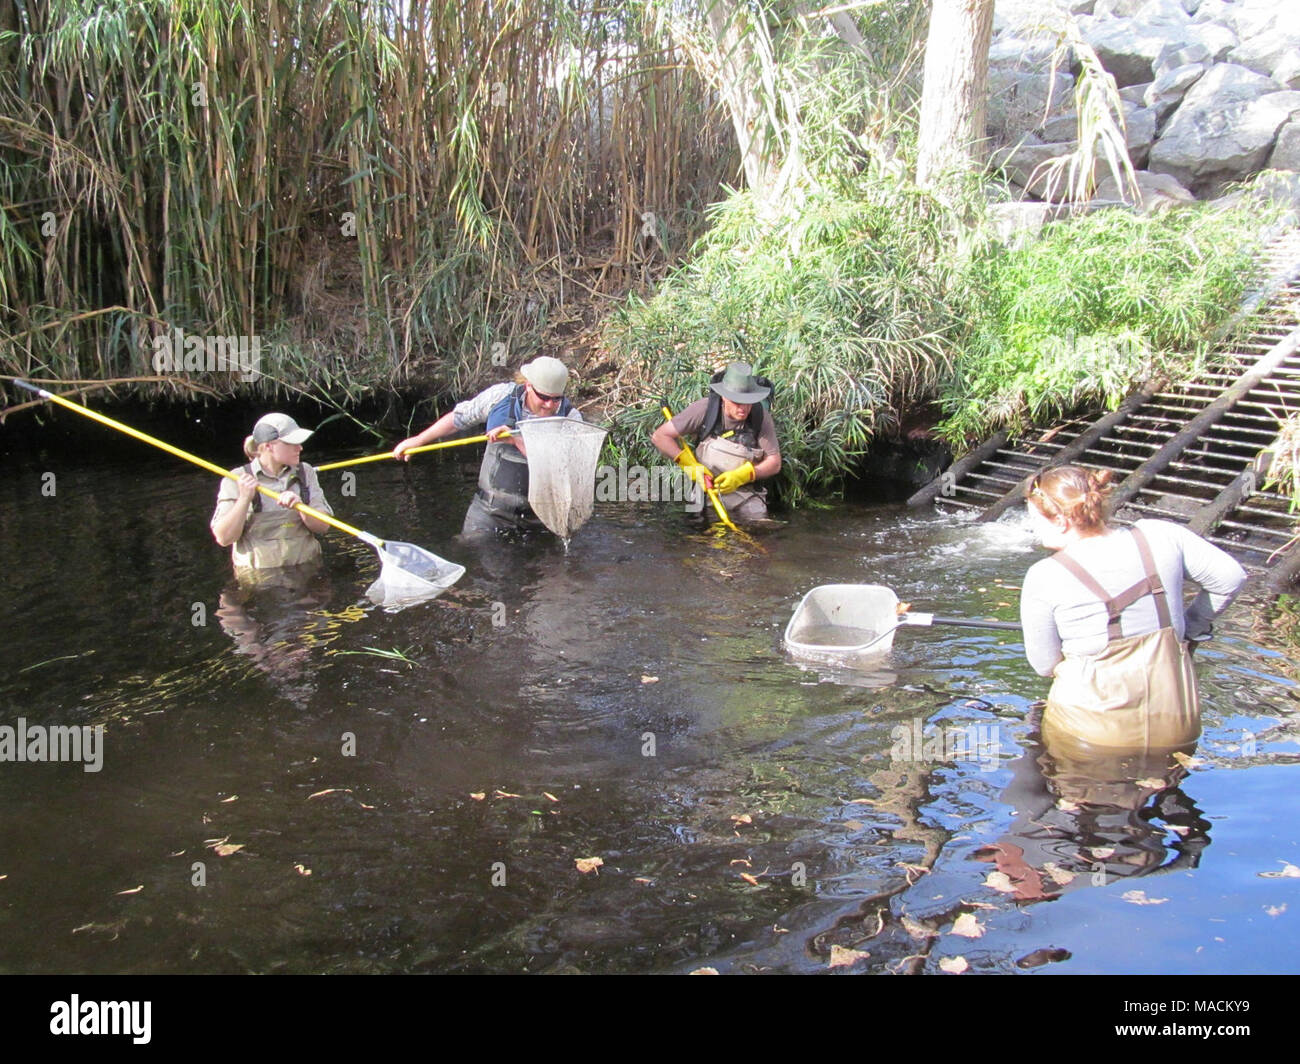 Santa Ana sucker conservation. Biologists from multiple agencies in southern California working together to remove nonnative fish from Santa Ana sucker habitat. - Stock Image